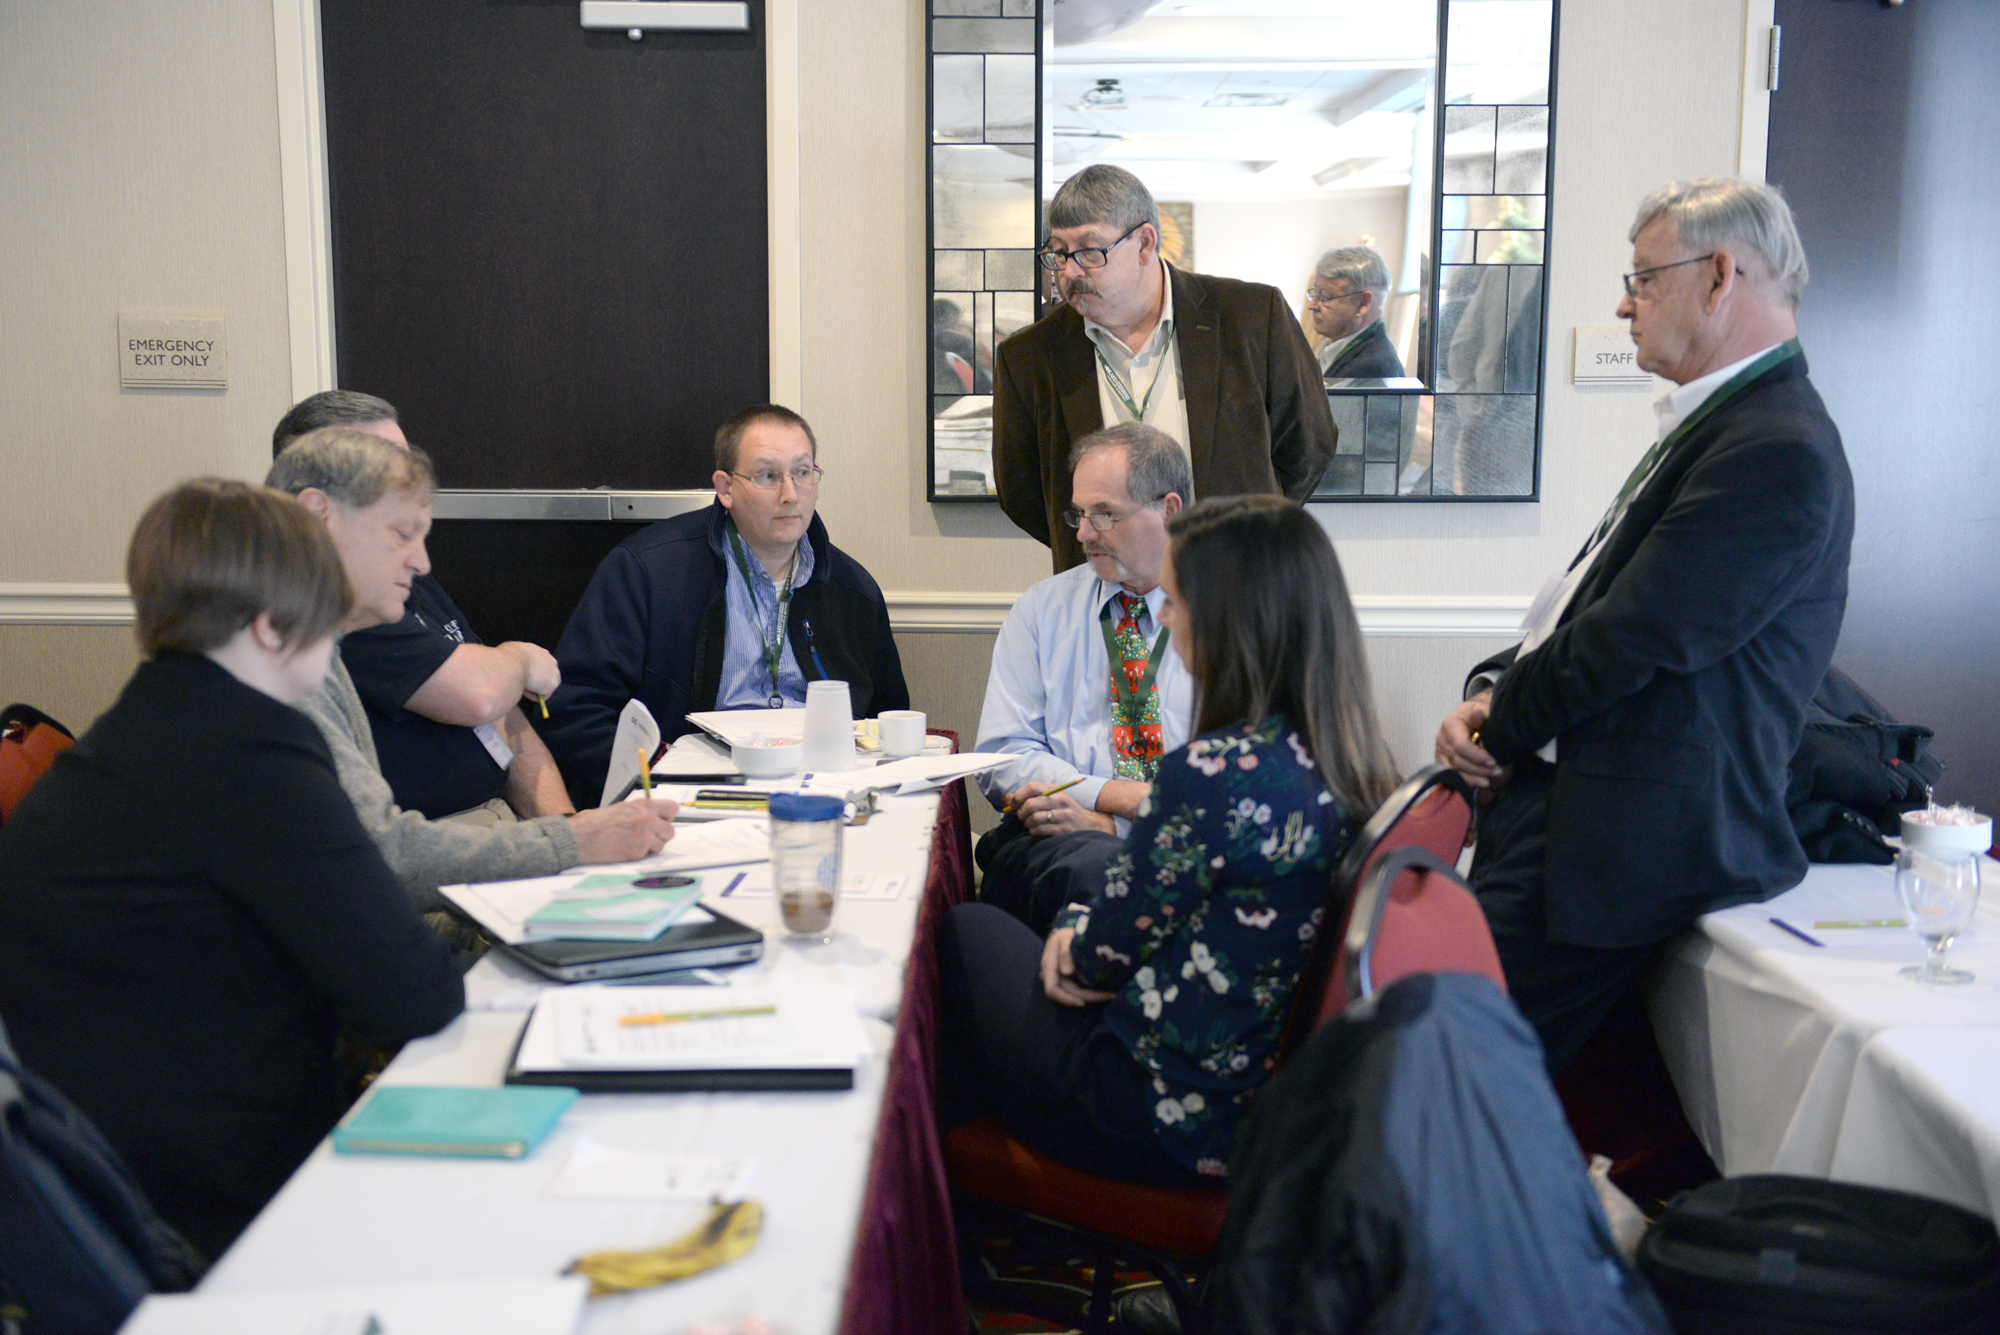 Participants at the Connect Your Economy Practical Seminar in Pikeville attend a breakout session. The two-day seminar gave practical information and resources to communities regarding a demand-driven approach to economic development through broadband.